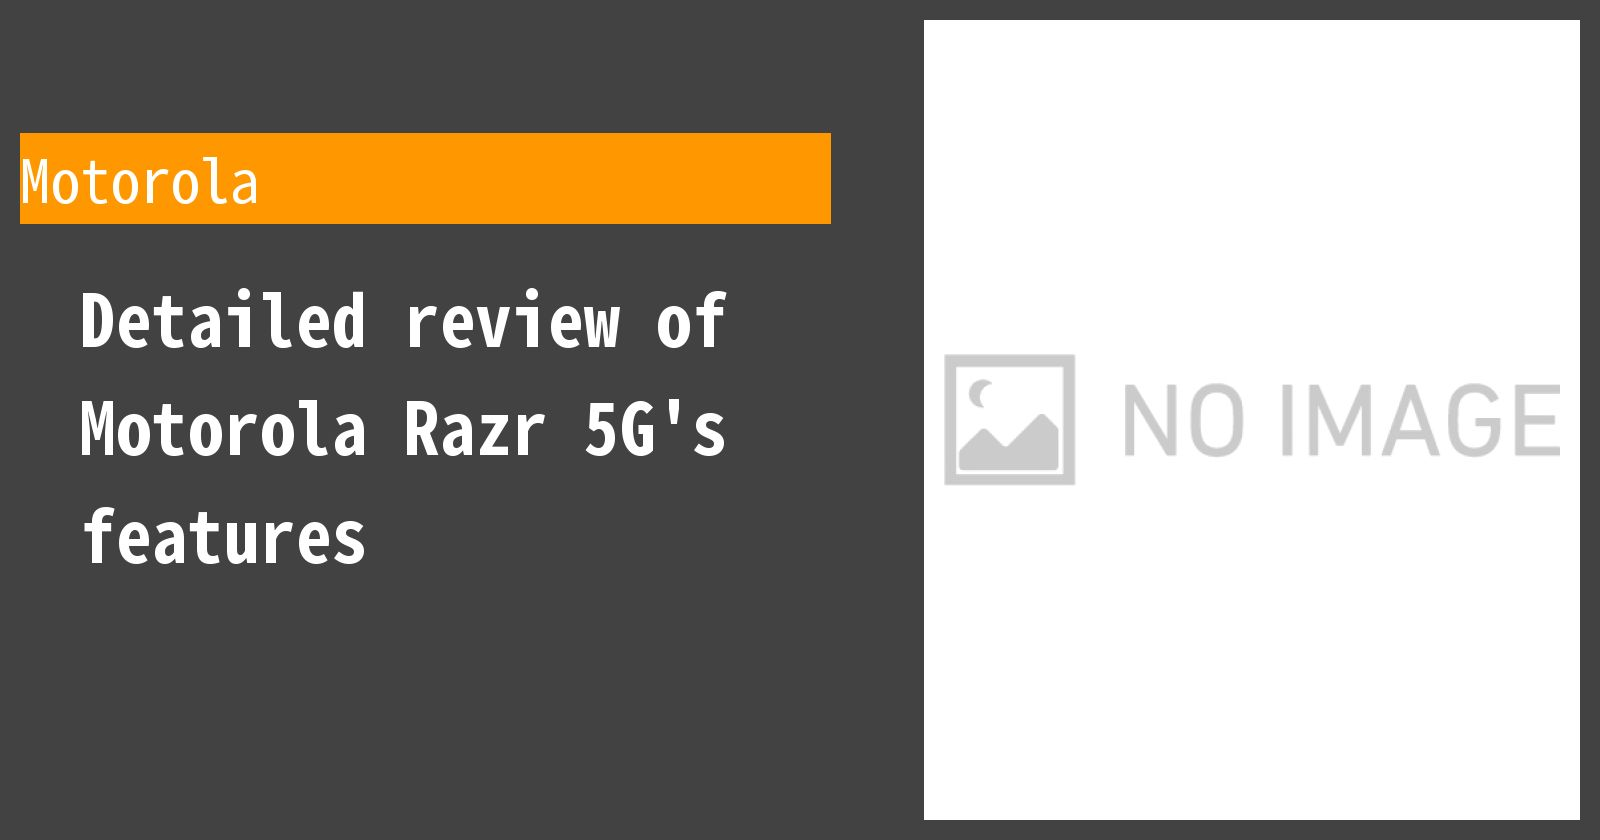 Detailed review of Motorola Razr 5G's features